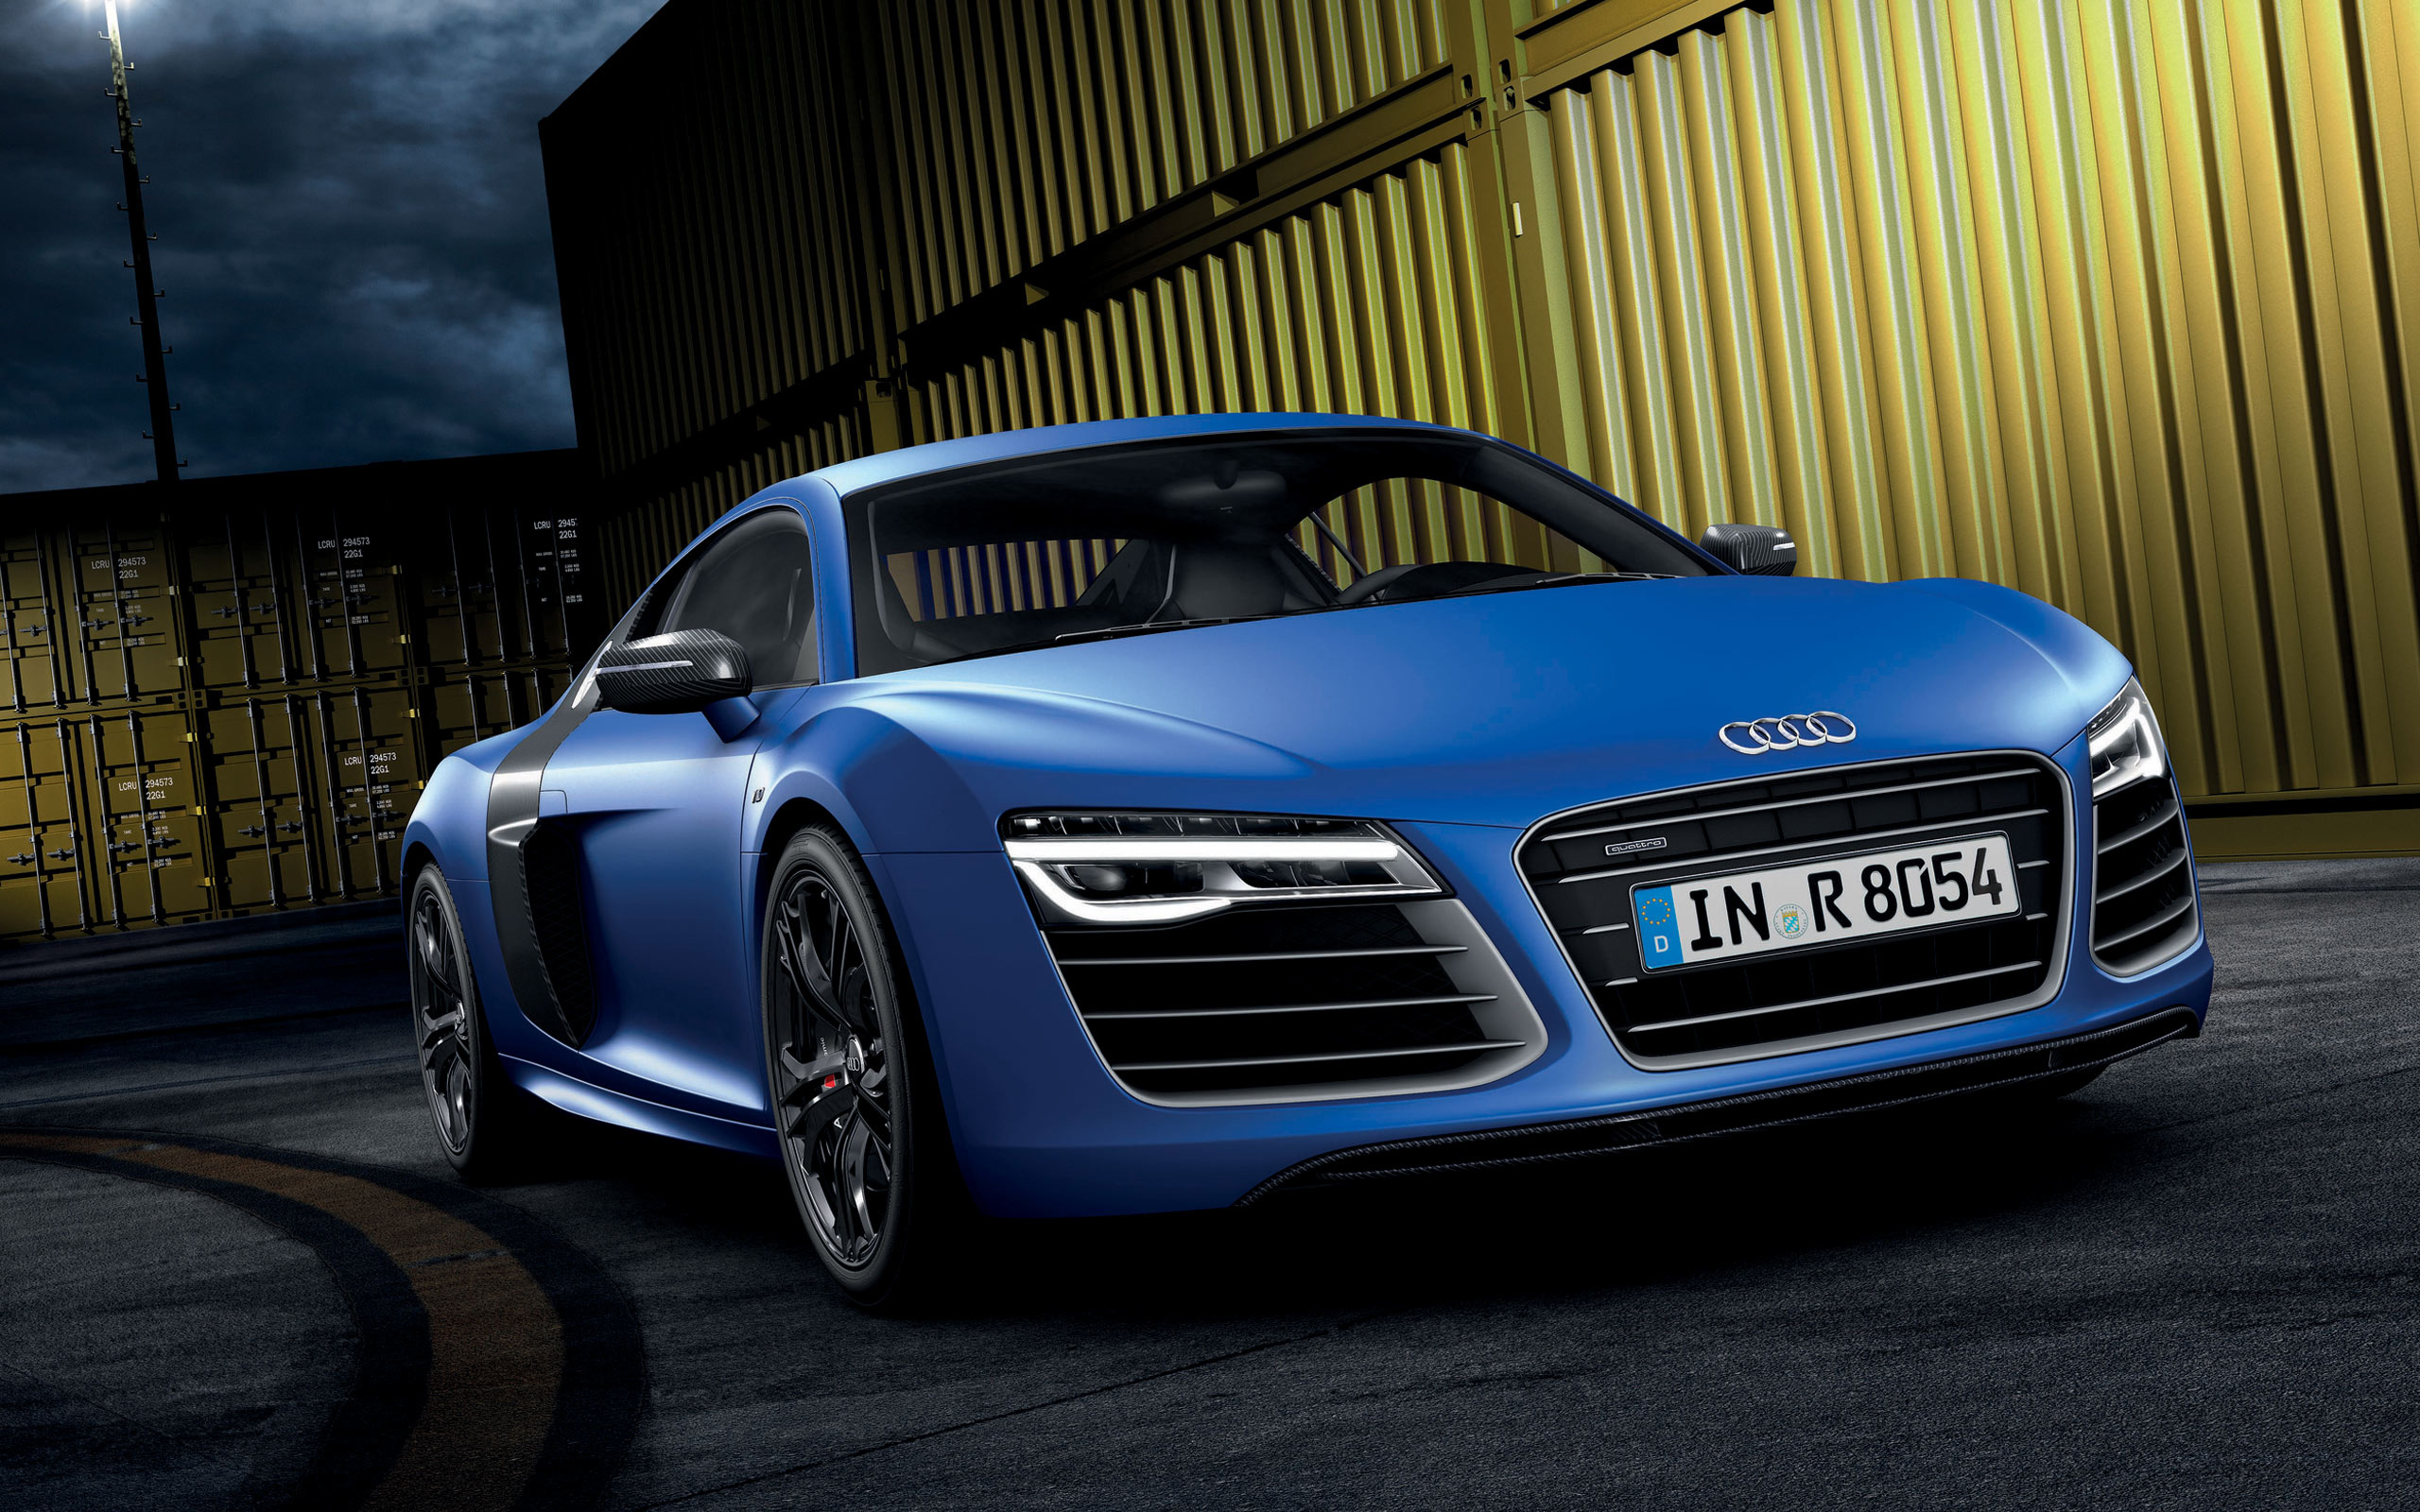 2013 audi r8 v10 plus wallpaper hd car wallpapers id 3055. Black Bedroom Furniture Sets. Home Design Ideas